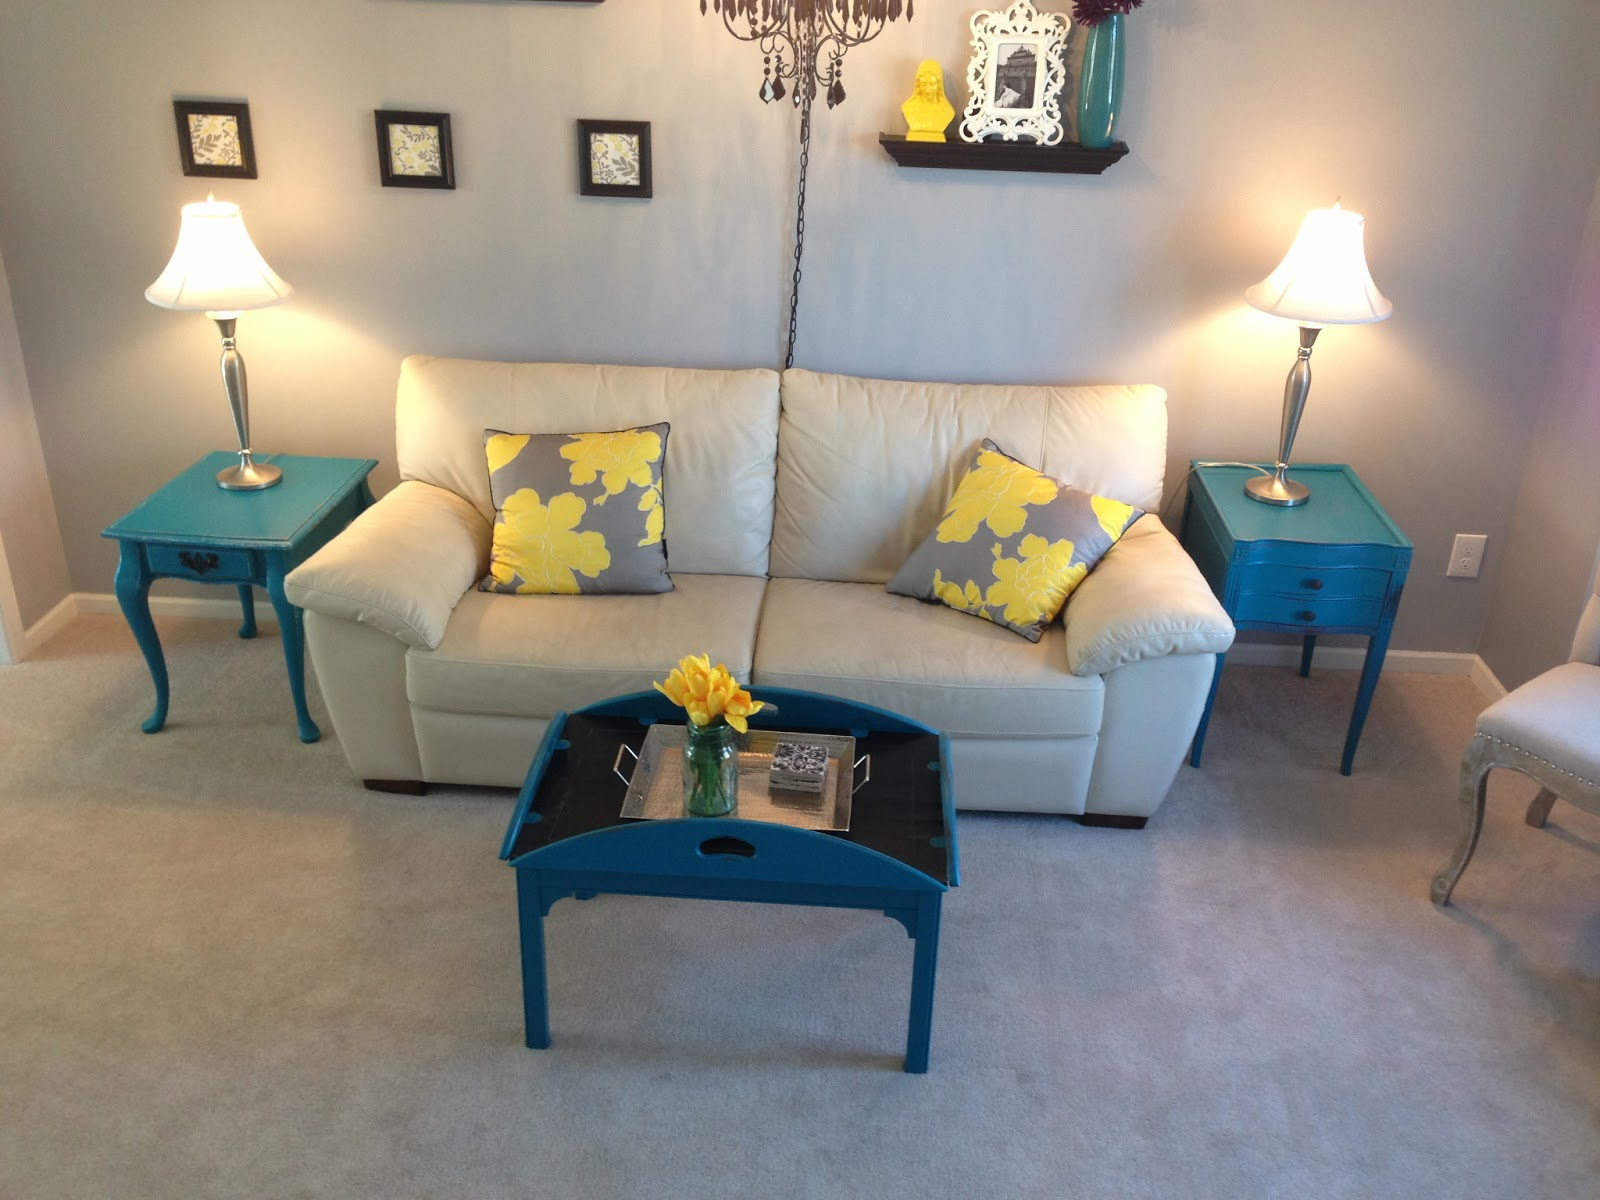 Distressed turquoise 3 piece living room set - SOLD title=